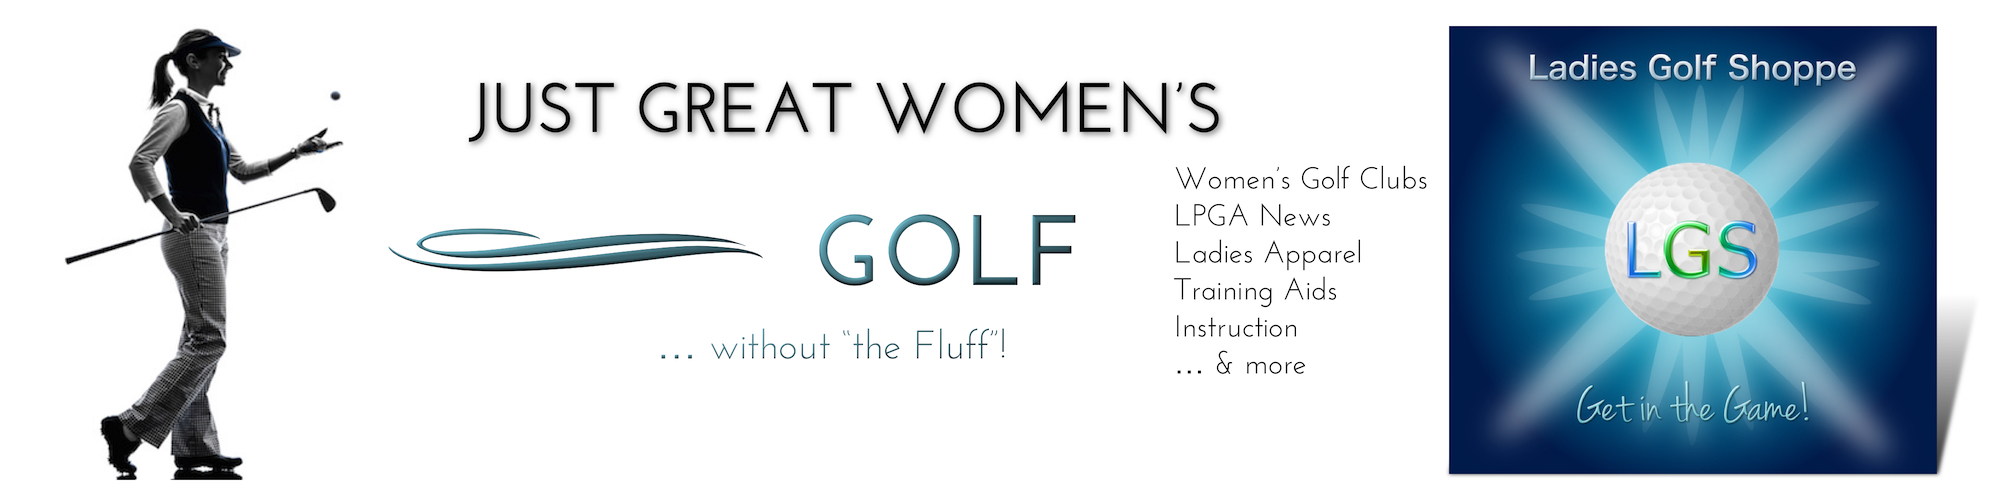 Ladies Golf LGS